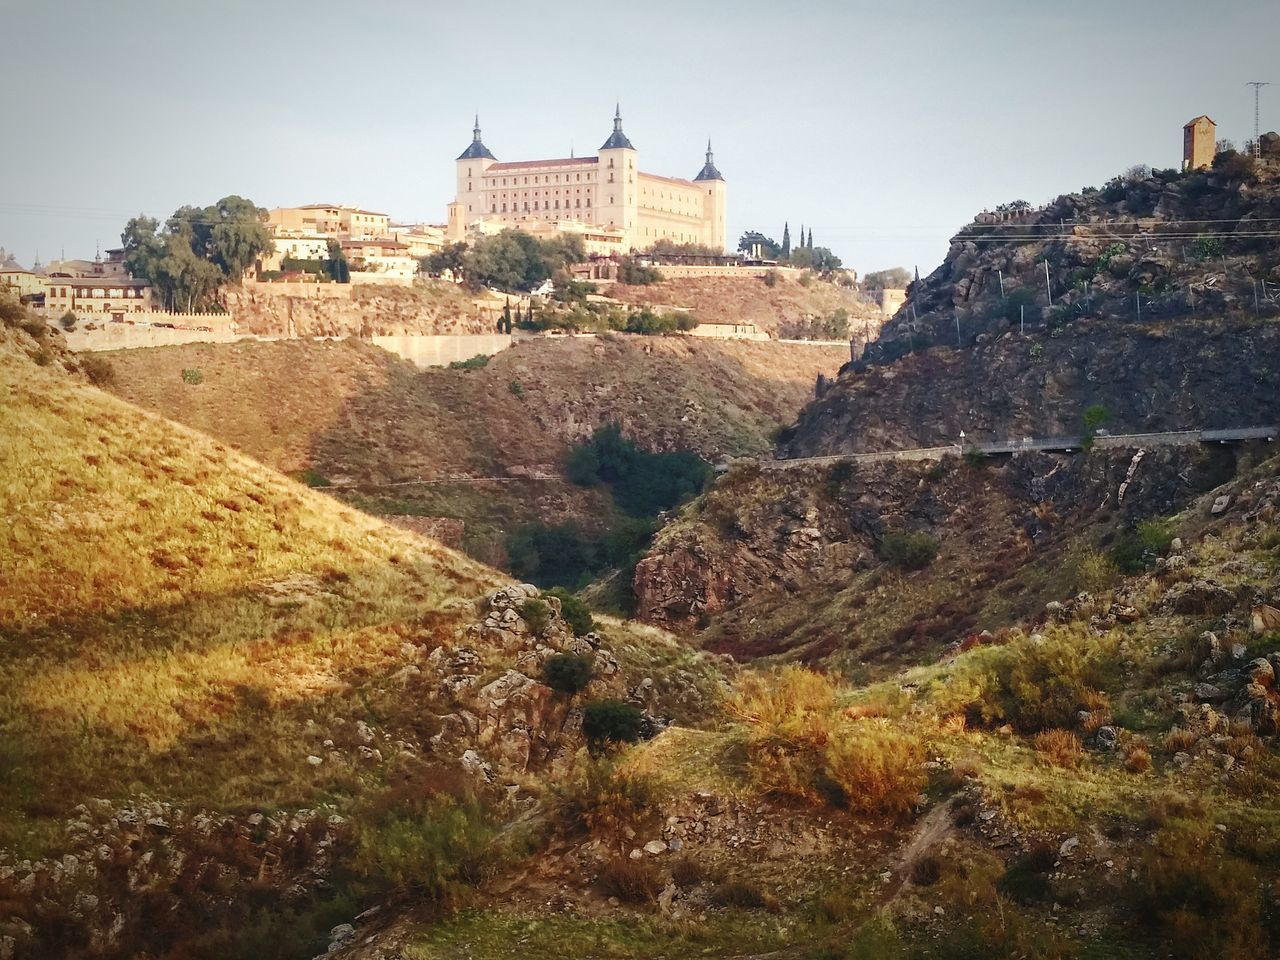 Seen from the opposite bank of the Tajo River, the Toledo Spain Alcazar. Architecture History Travel Destinations Outdoors